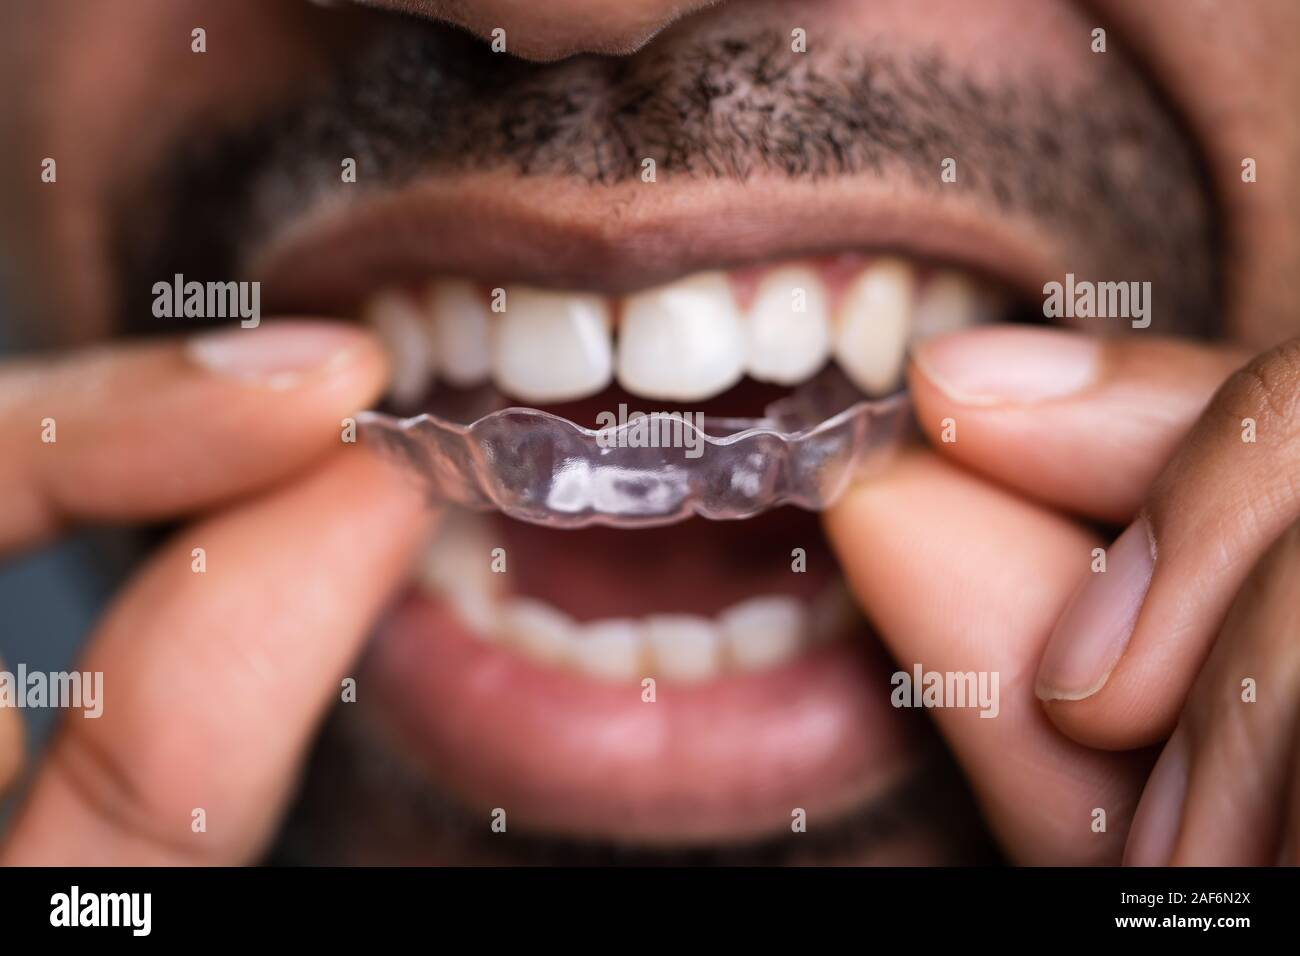 Close-up Of A Man's Hand Putting Transparent Aligner In Teeth Stock Photo